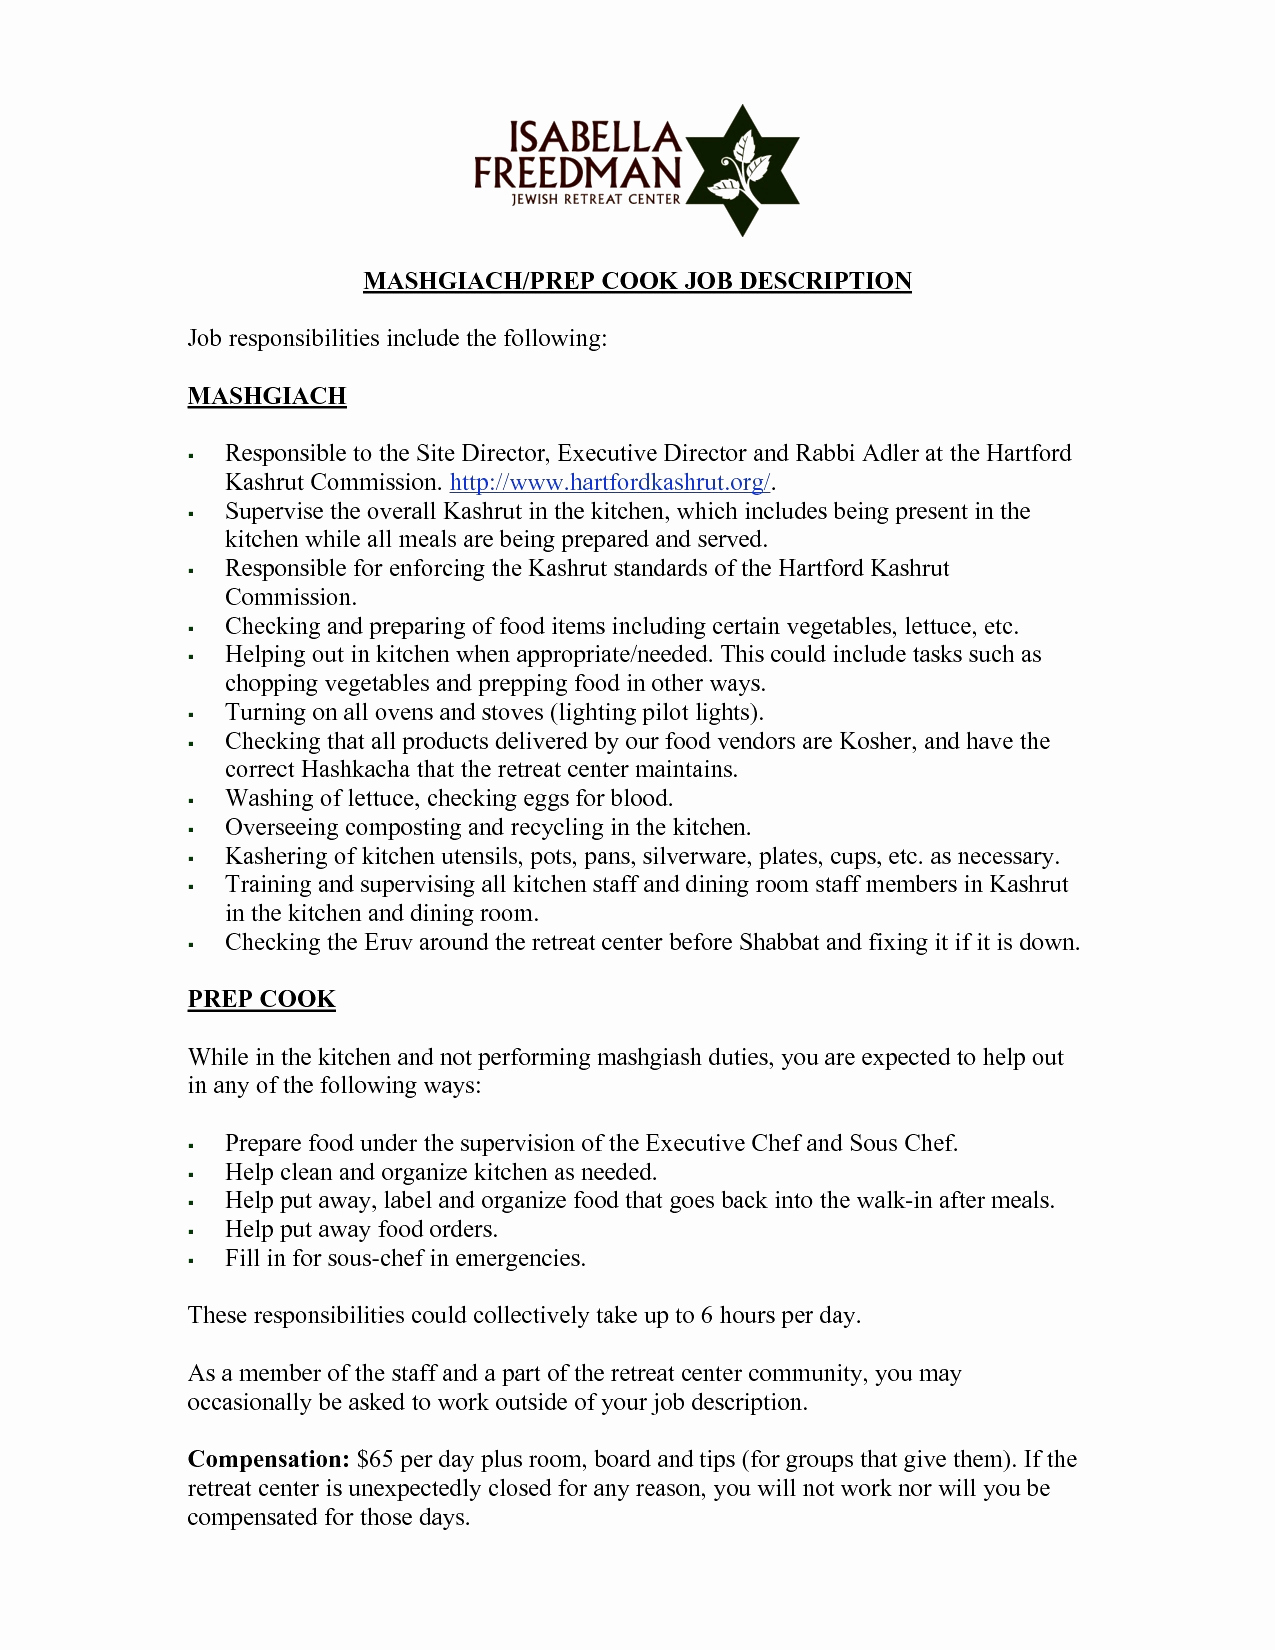 Cover Letter for Essay Template - Cover Letter for Essay Examples New Resume and Cover Letter Template